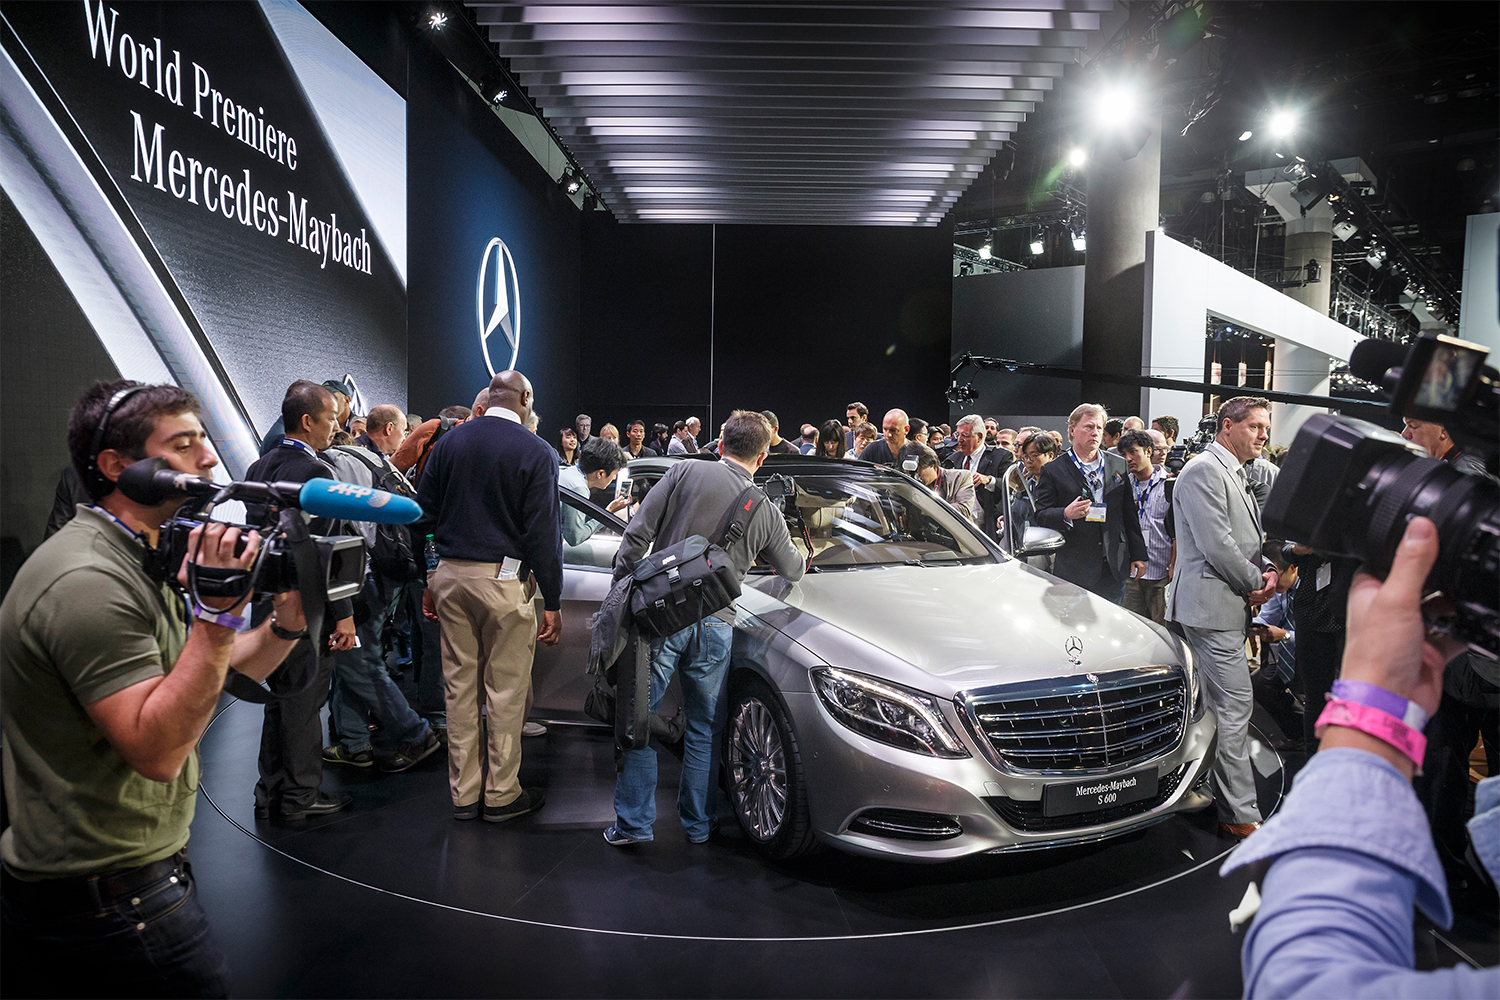 Press swarm the Mercedes-Maybach S 600 at the Los Angeles Auto Show in 2014